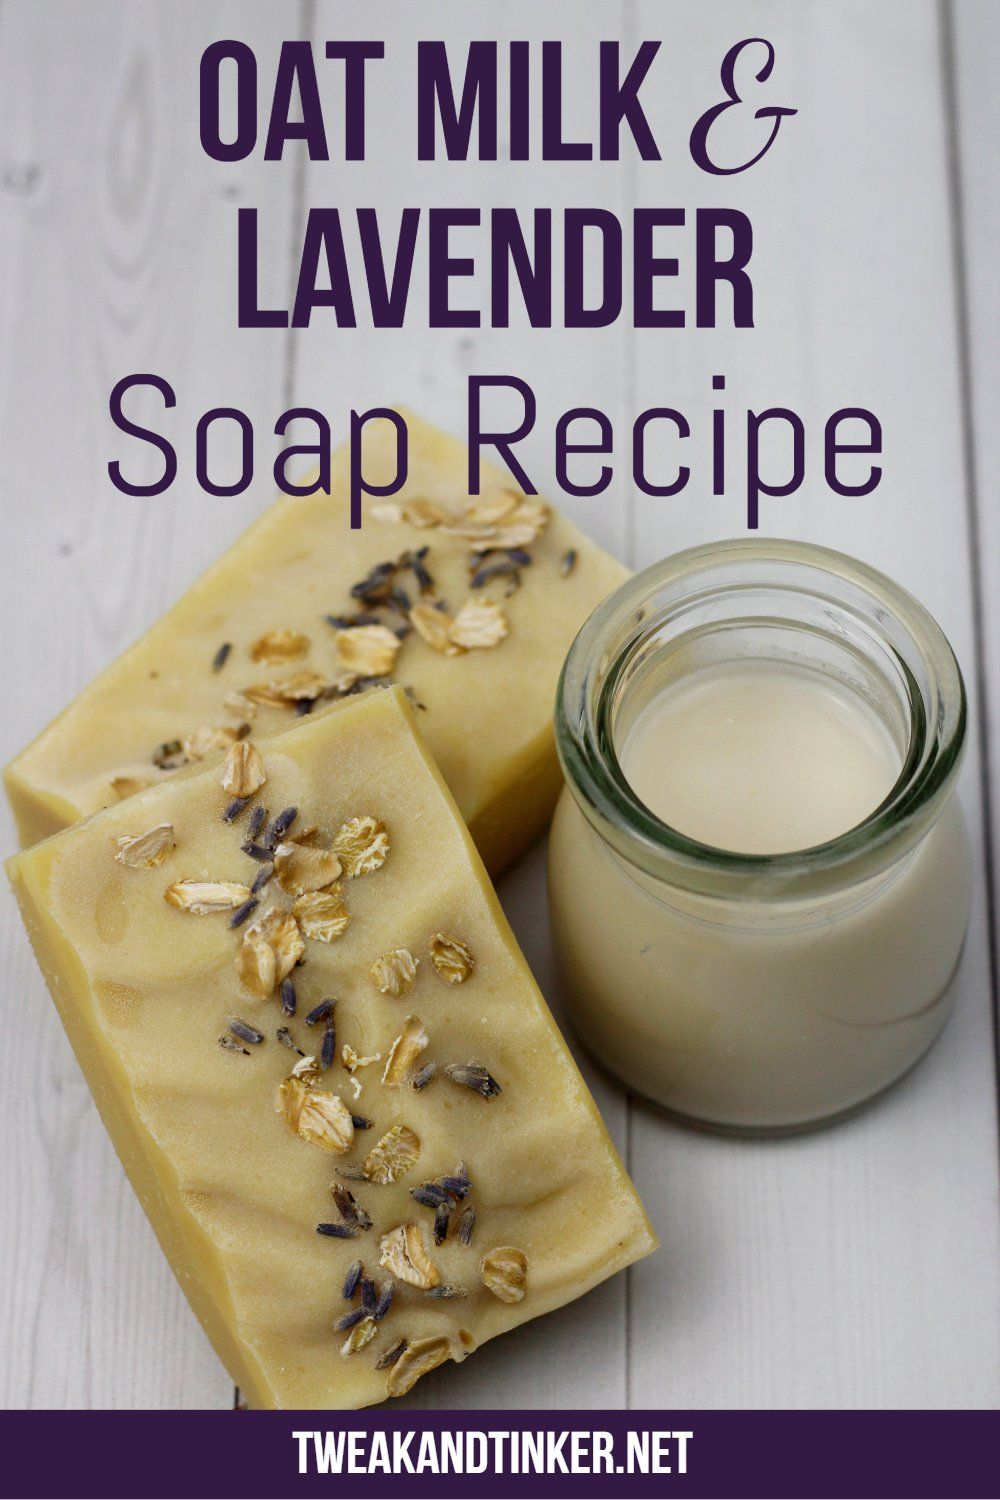 This cold process soap is new spin on the traditional lavender soap recipe with the addition of silky oat milk and a dash of geranium essential oil. So soothing!